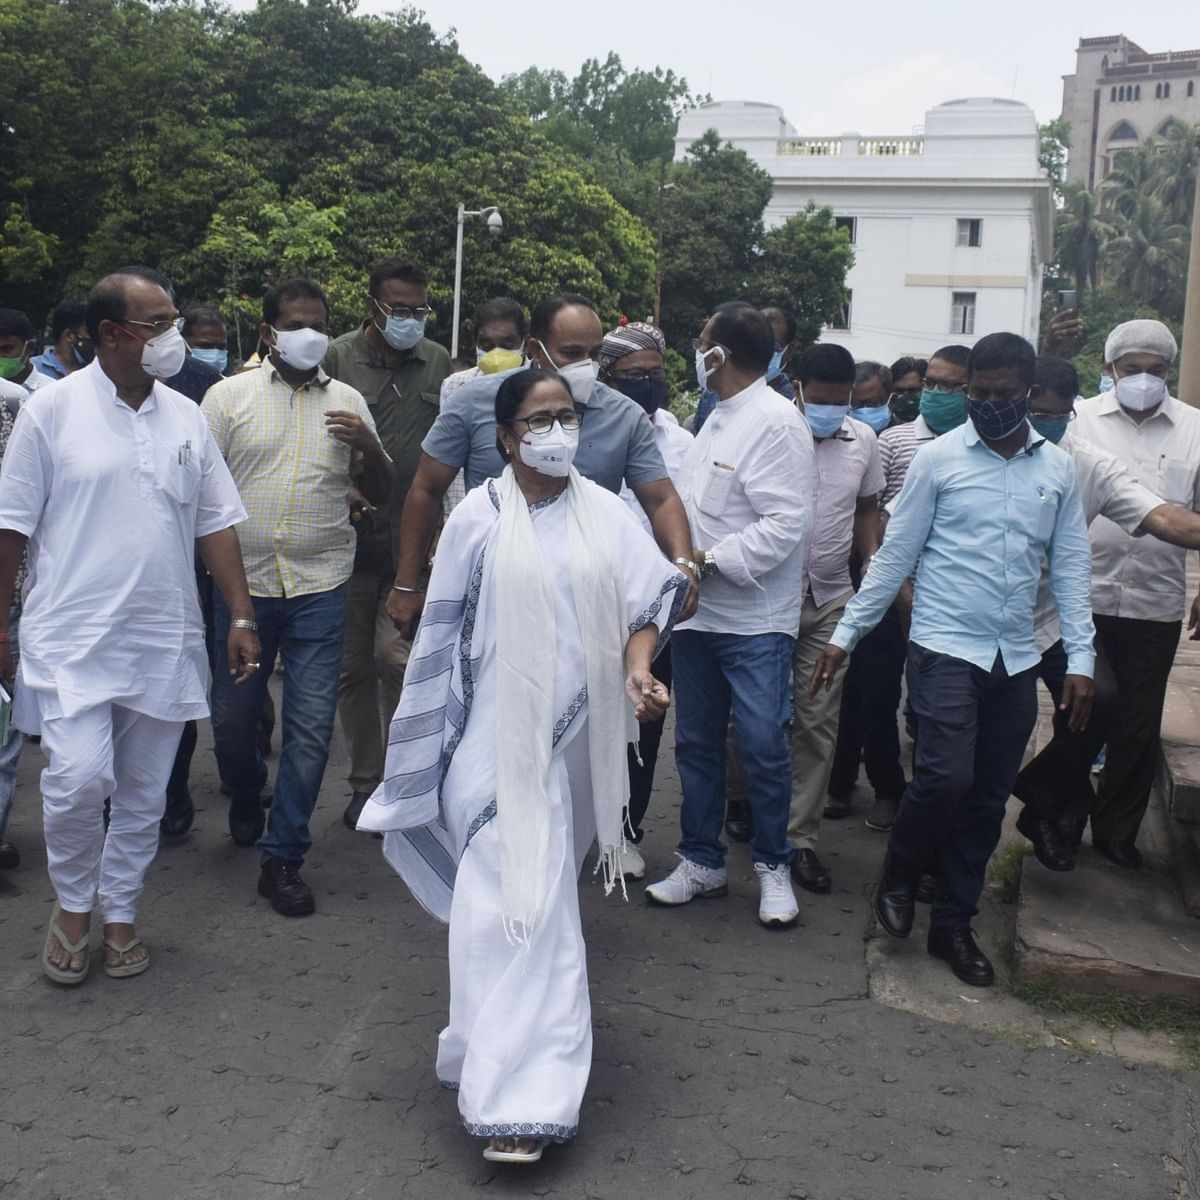 Mamata Banerjee starts dharna at CBI's Kolkata office to protest arrest of four Trinamool Congress leaders